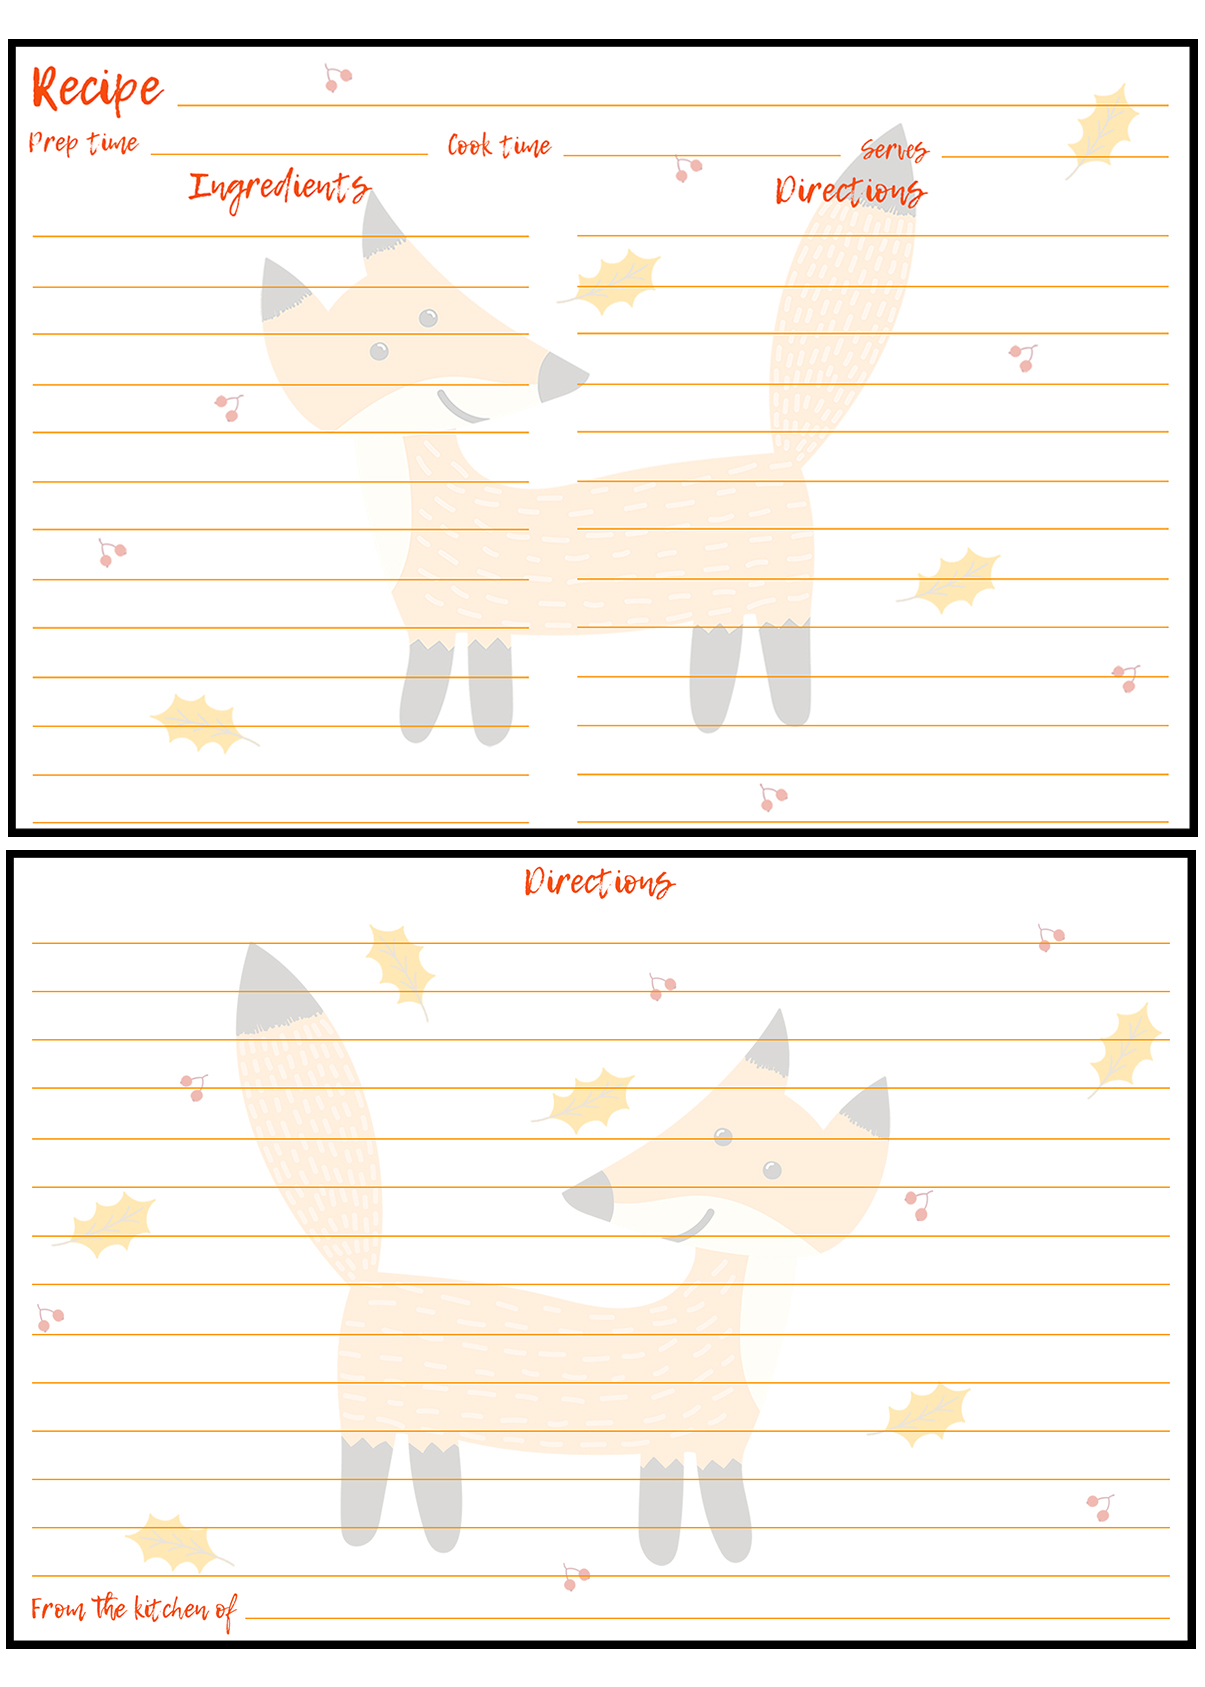 Printable Fall Recipe Card Fox